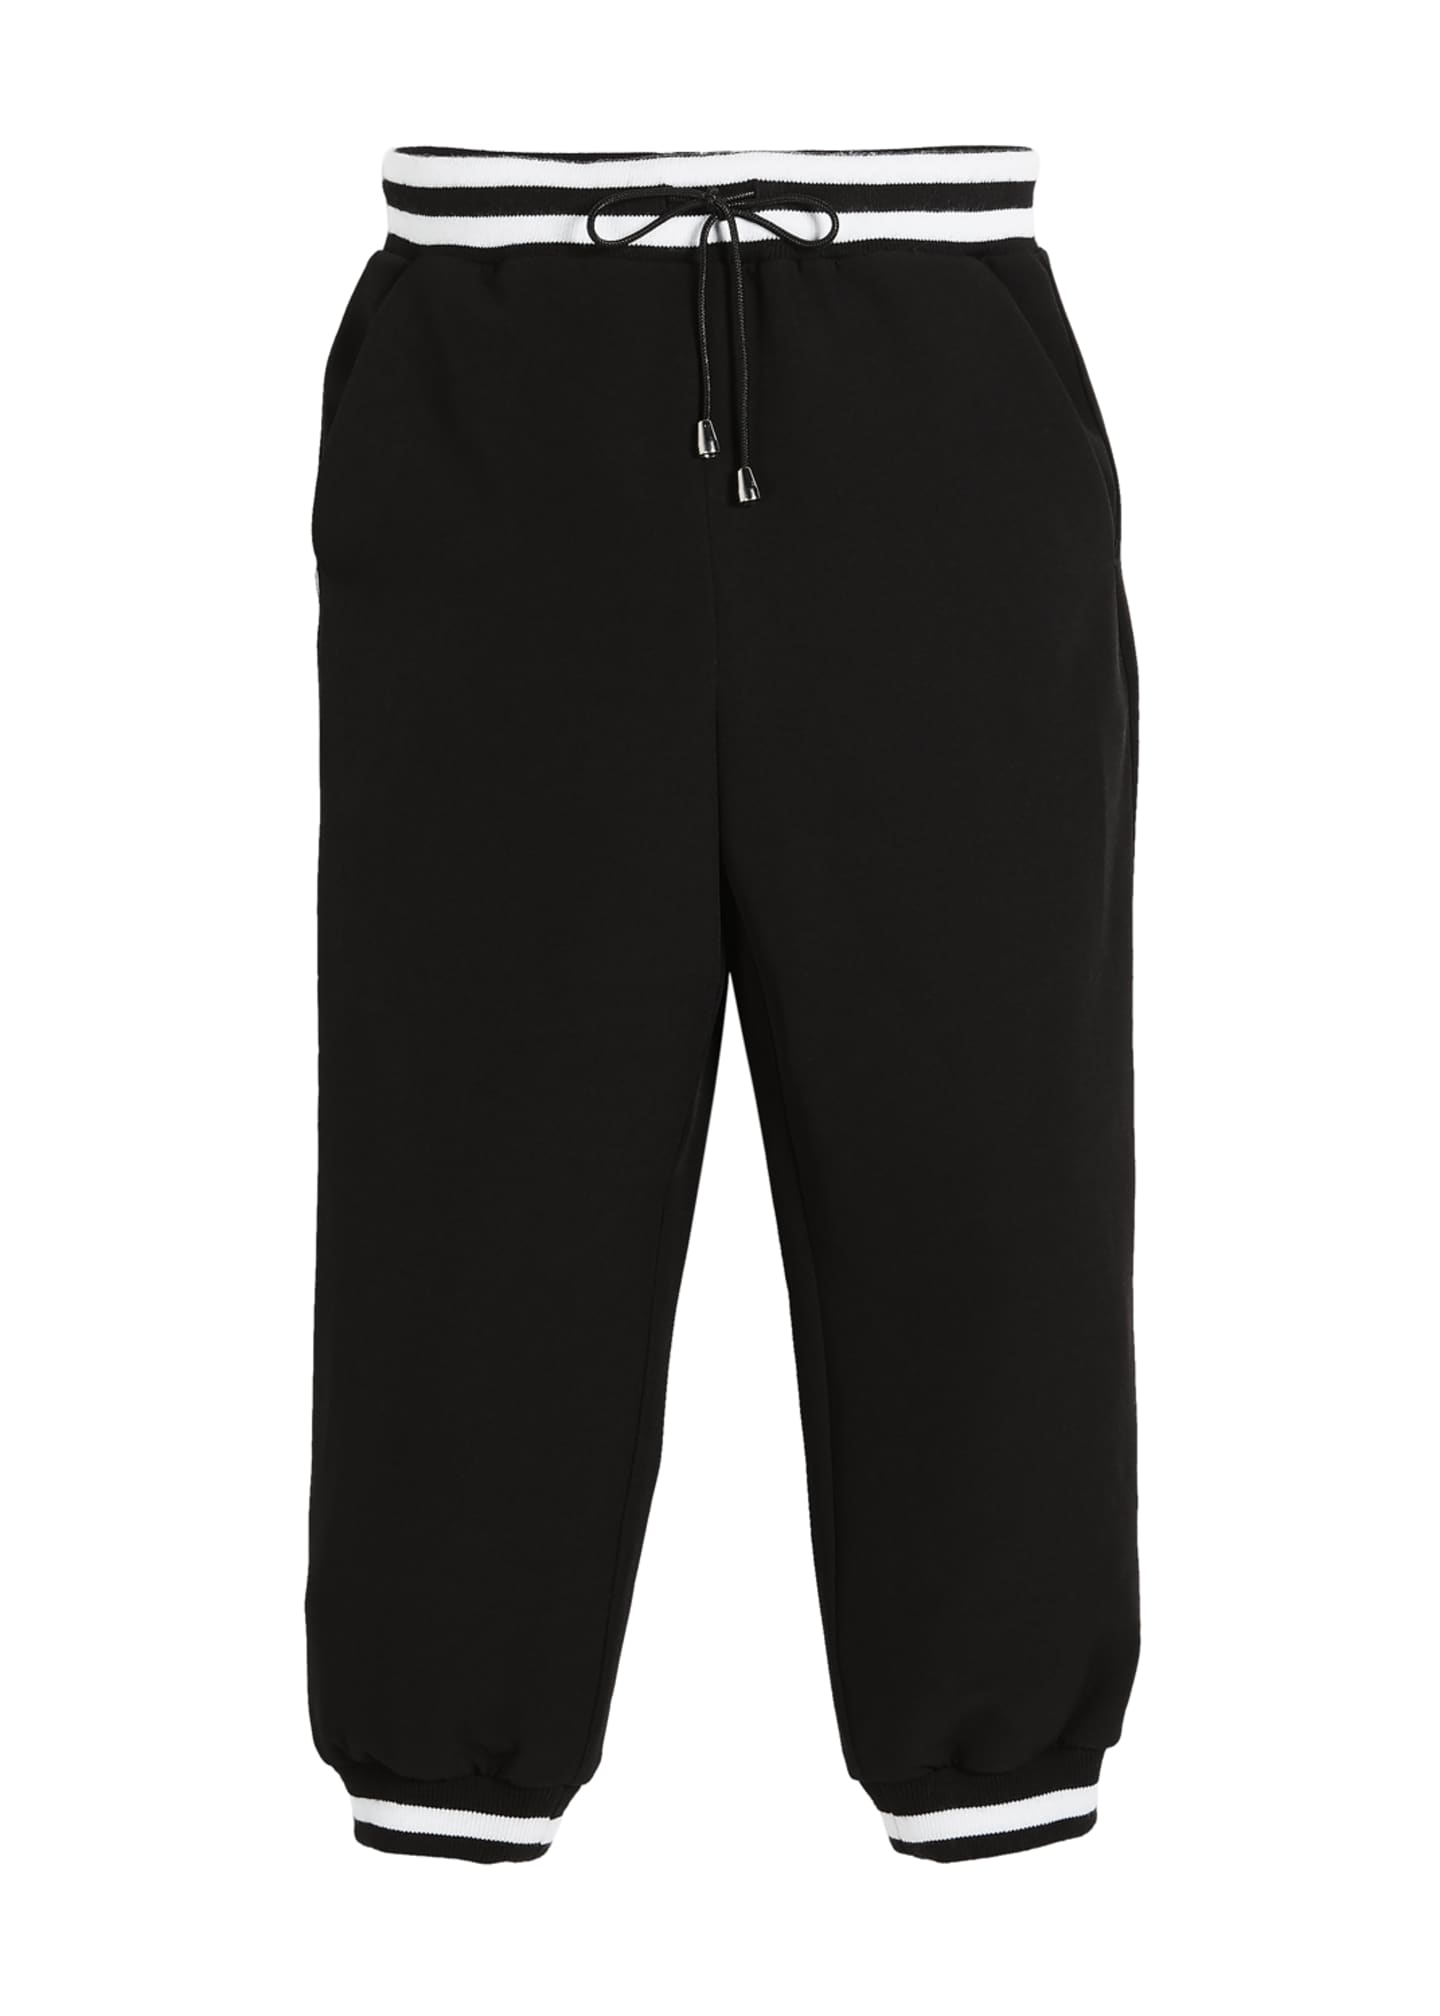 Milly Minis Italian Cady Striped Track Pants, Size